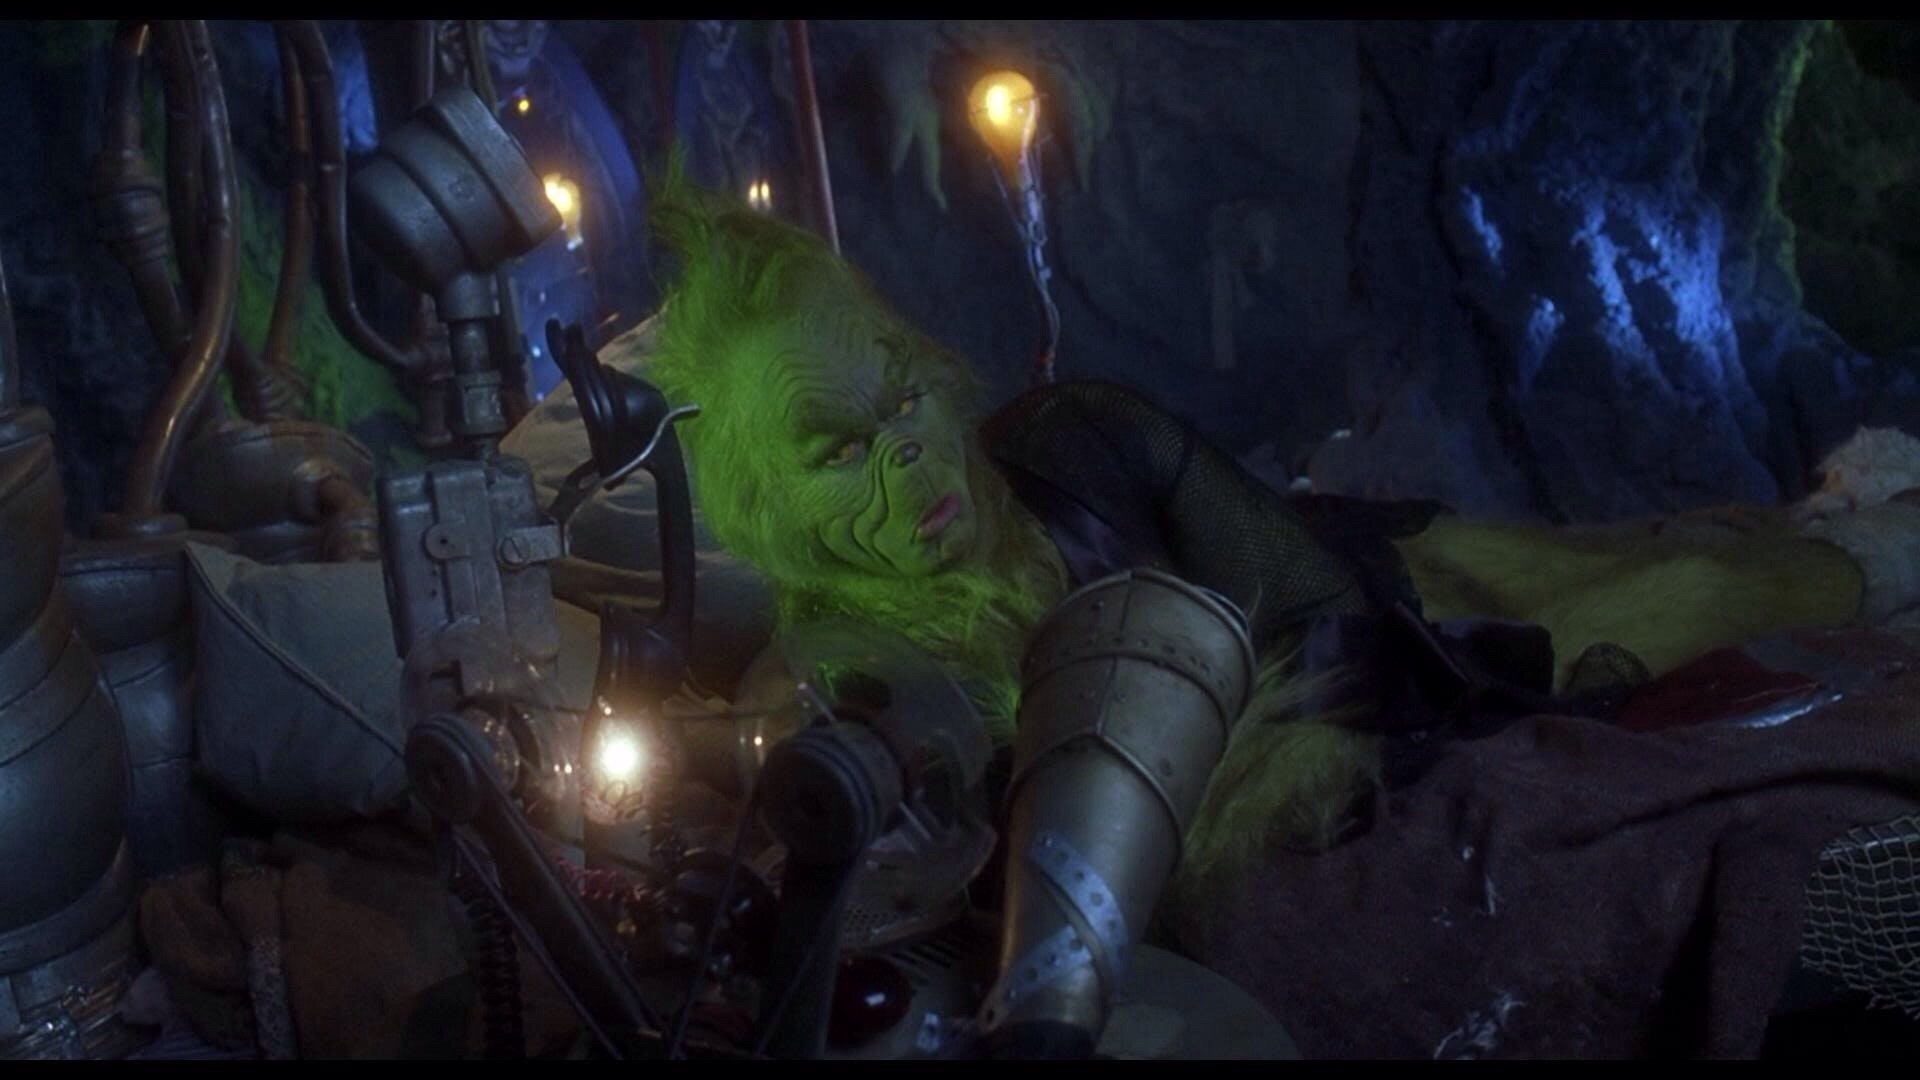 Sexual references in the grinch